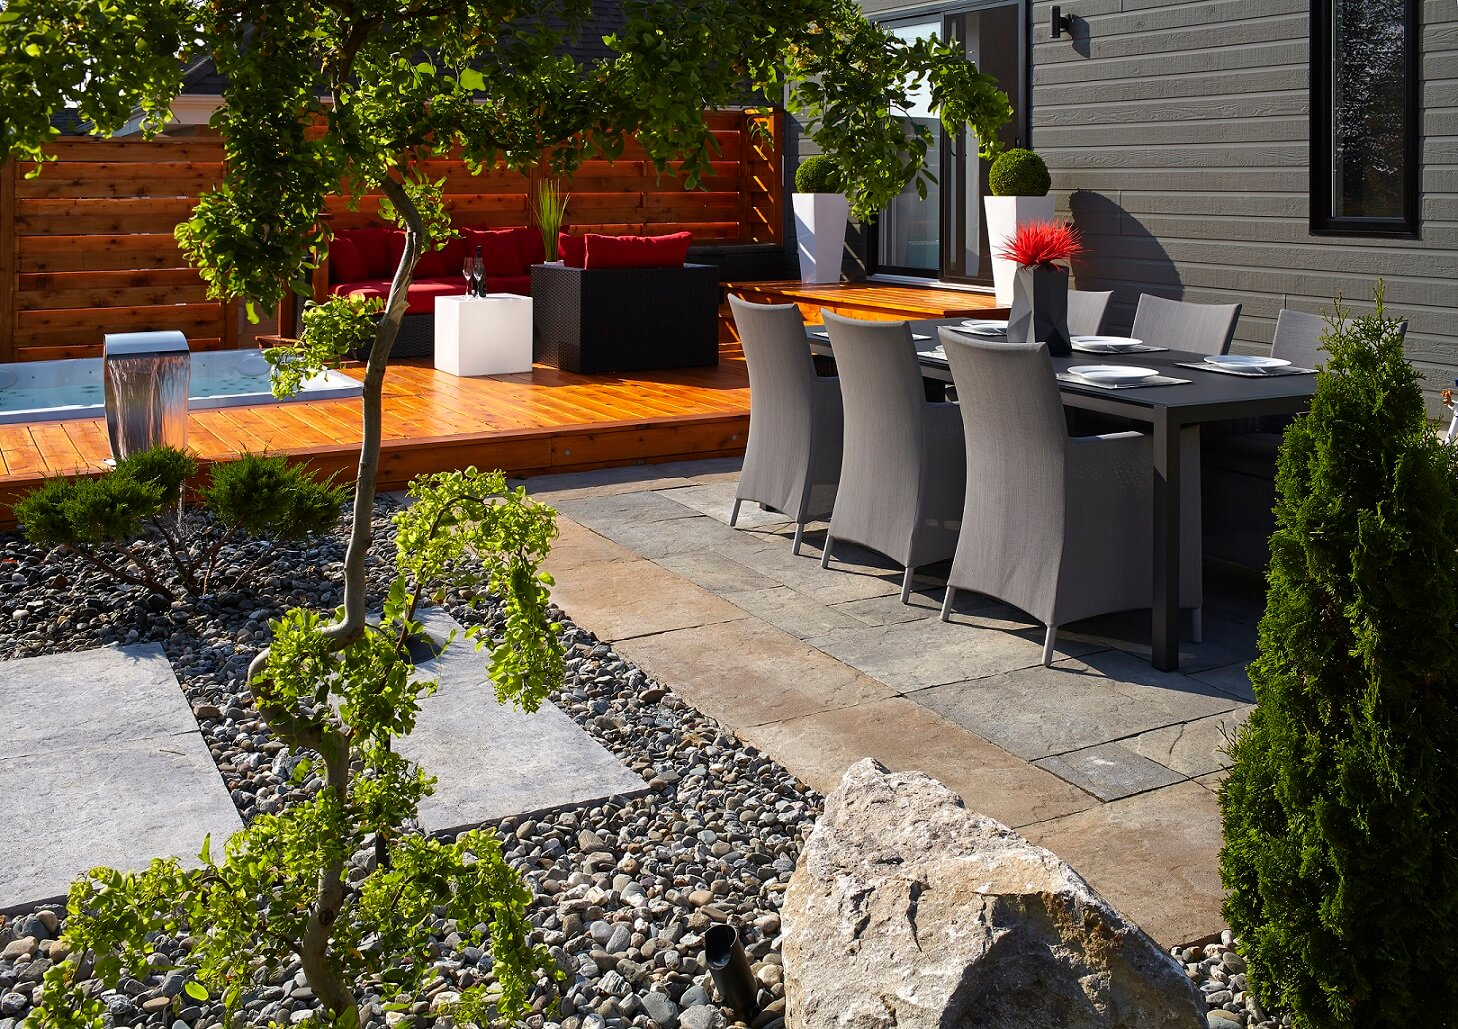 Ma onnex am nagement paysager on pinterest mondrian - Amenagement d une terrasse exterieure ...